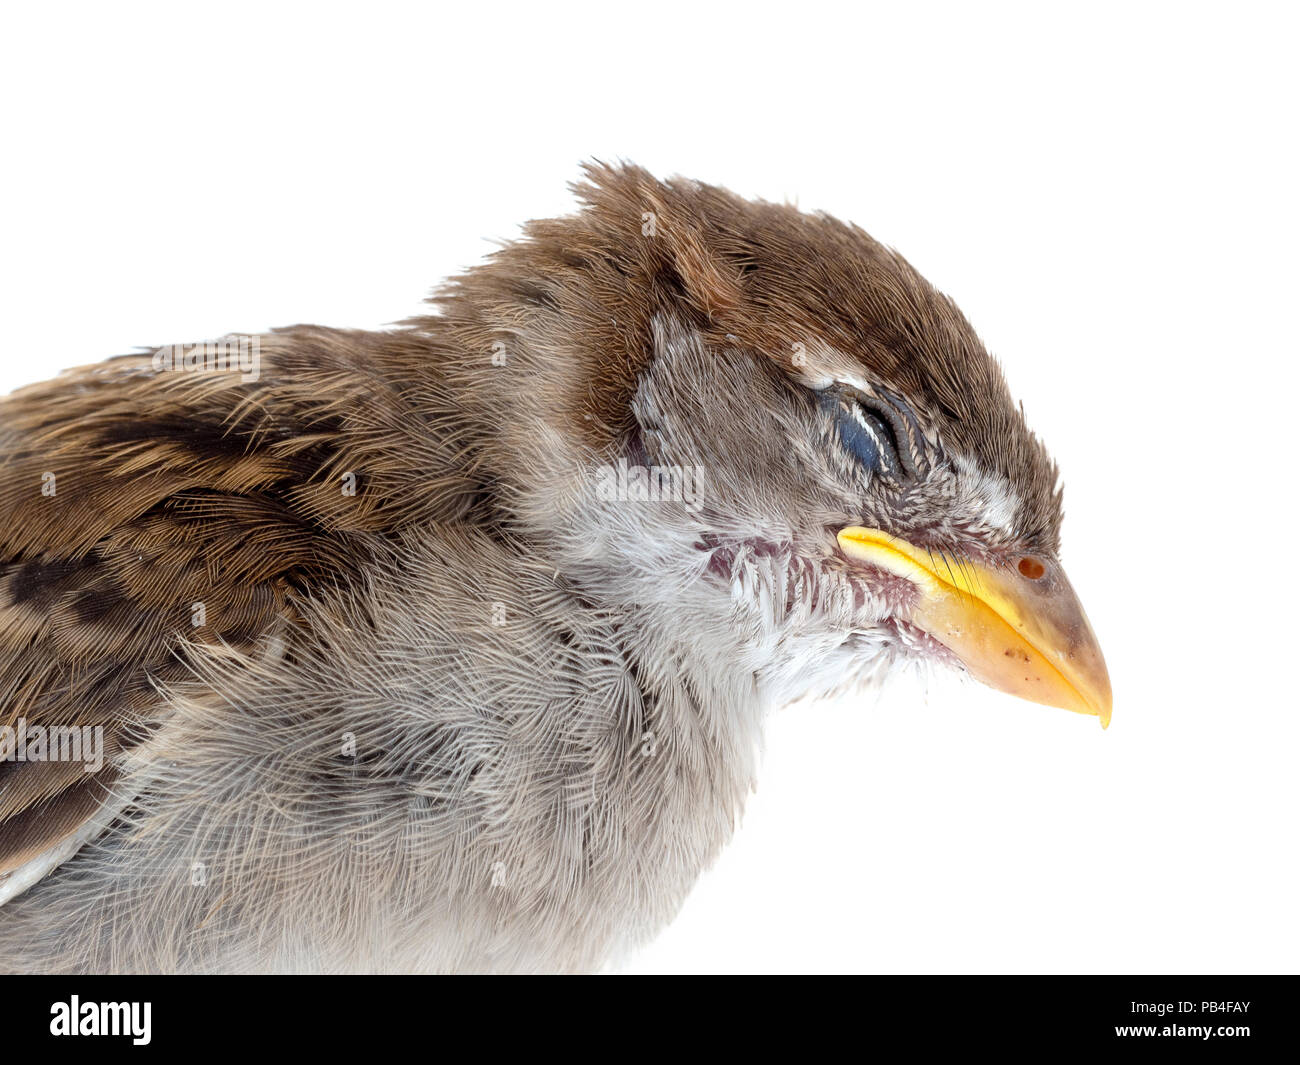 A dead sparrow, sadly killed by my pet cat. On white background. Young bird, just a fledgeling. Closeup head detail. - Stock Image